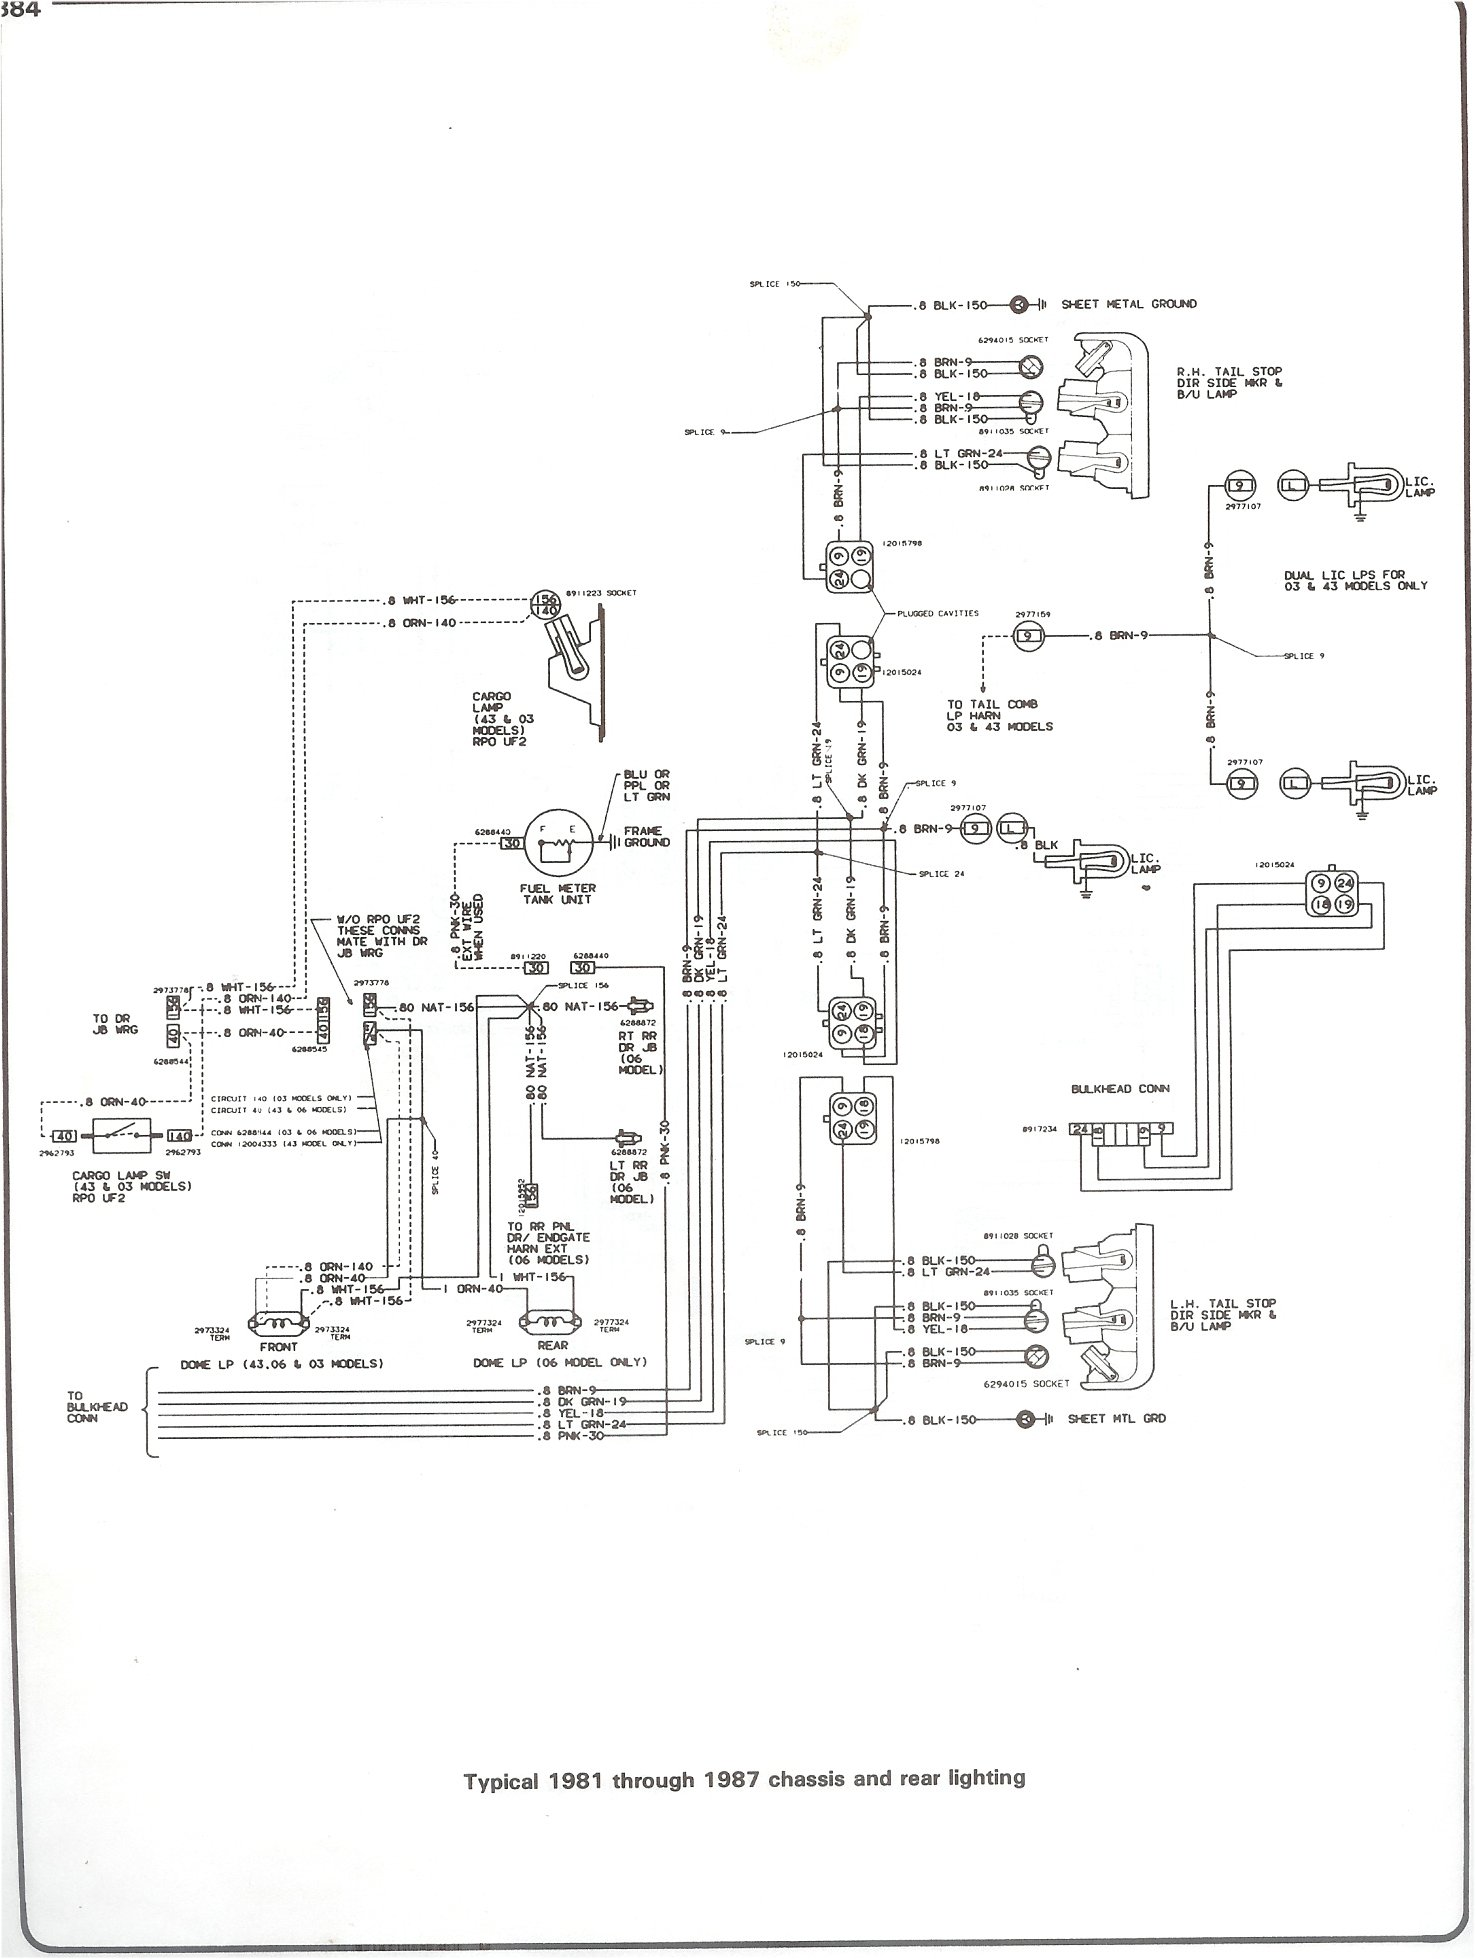 hight resolution of images of 1985 chevy truck gauge cluster wiring simple wiring schema haywire chevrolet 1985 wire diagrams 1985 chevy truck instrument cluster wiring diagram